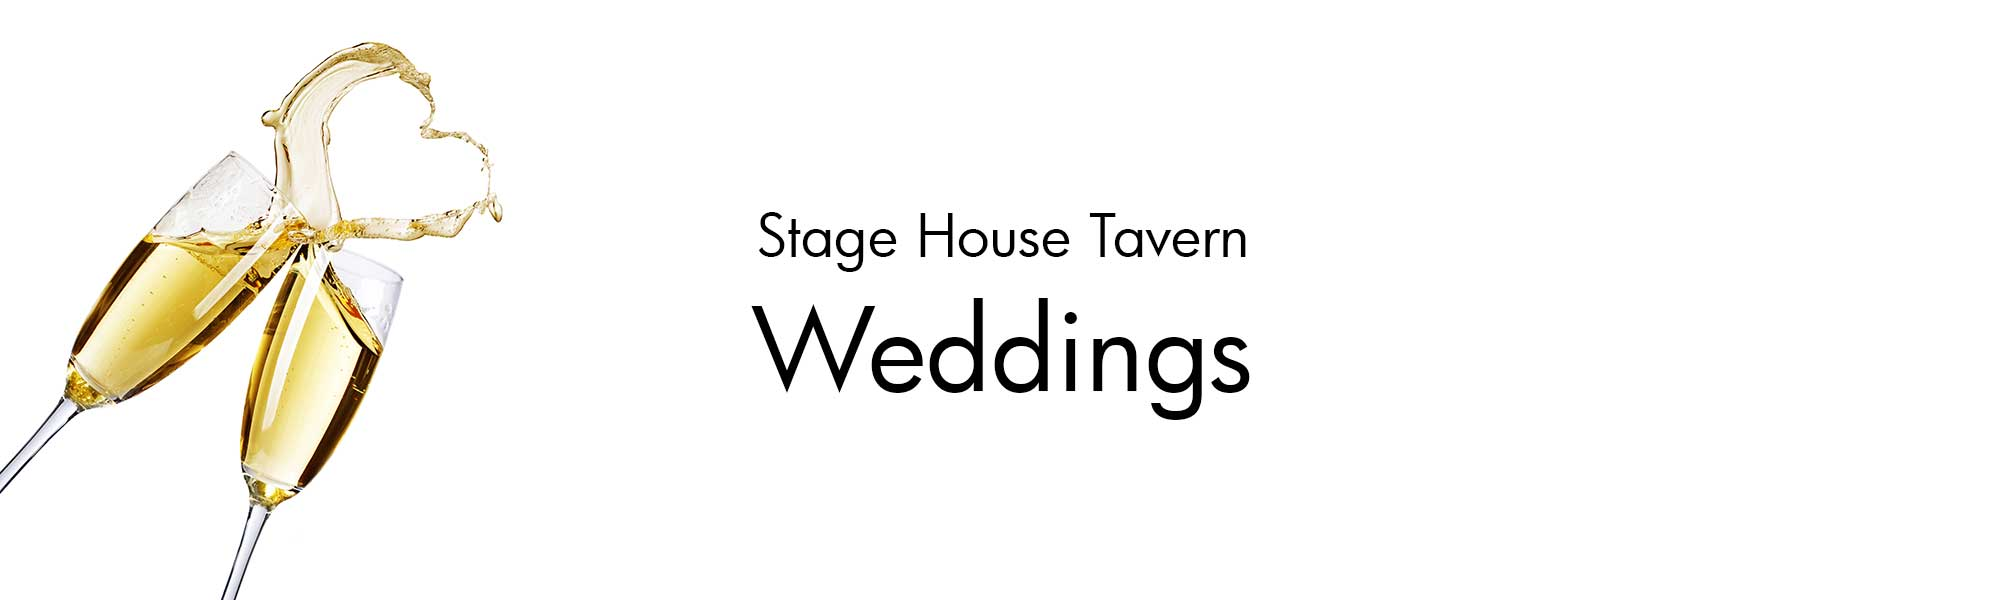 Weddings at the Stage House Tavern in Mountainside, NJ